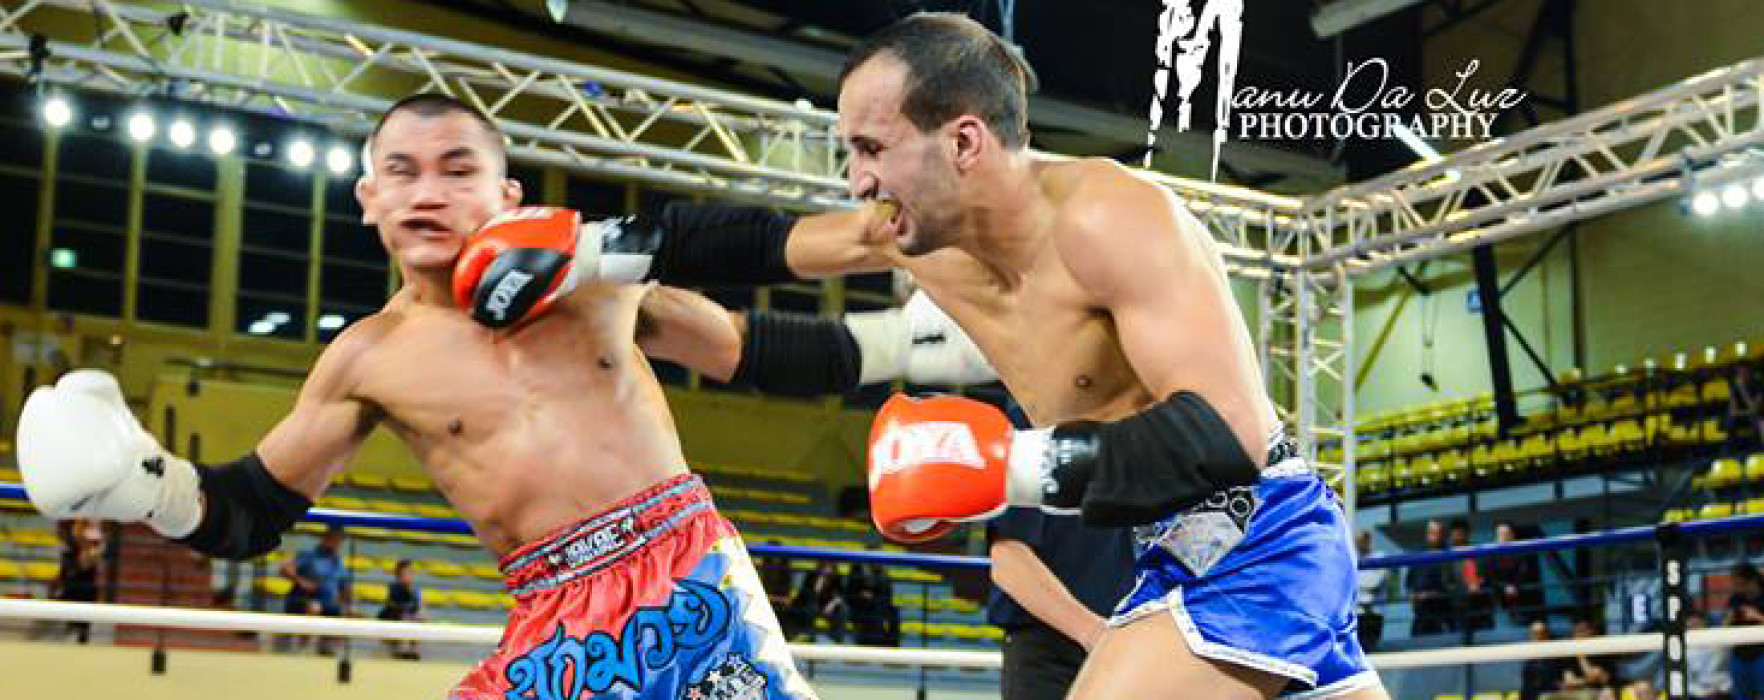 Video: Mohamed Galaoui vs Bovy Sor Udomson – Radikal Fight 2 – France